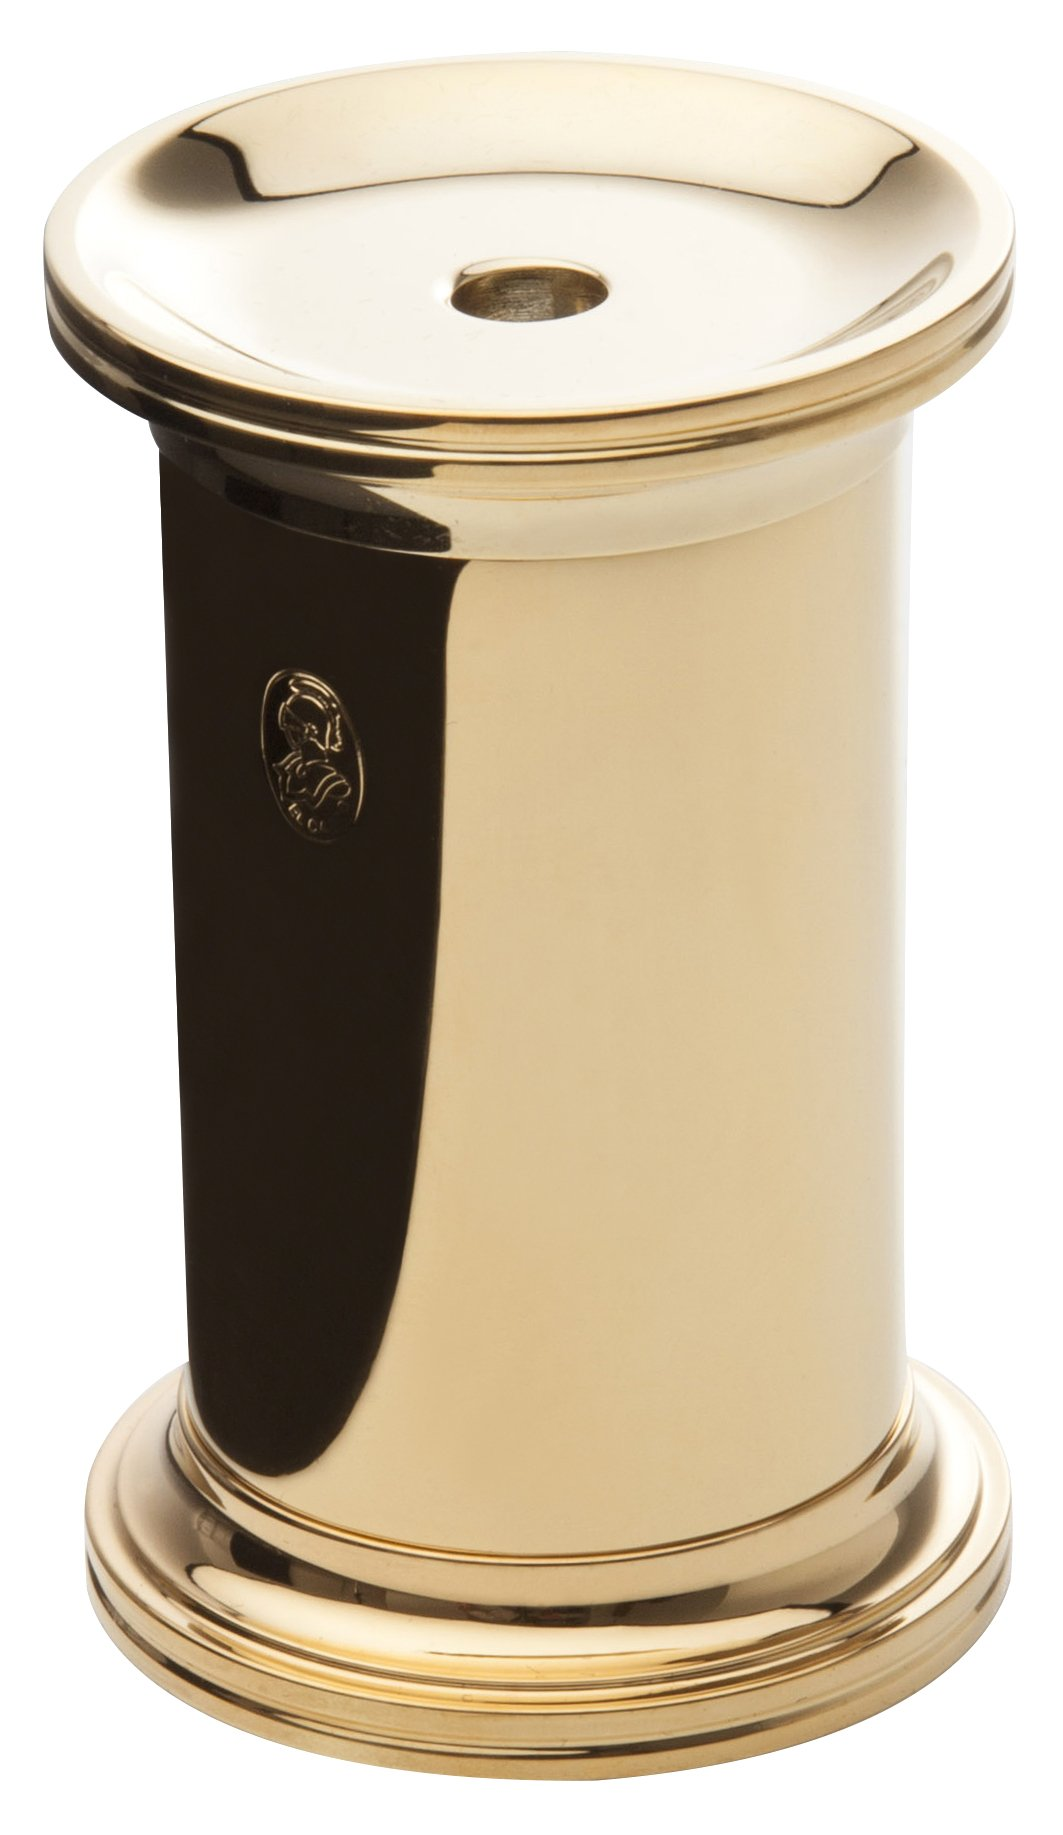 El Casco M435 Pencil Sharpener (Gold)